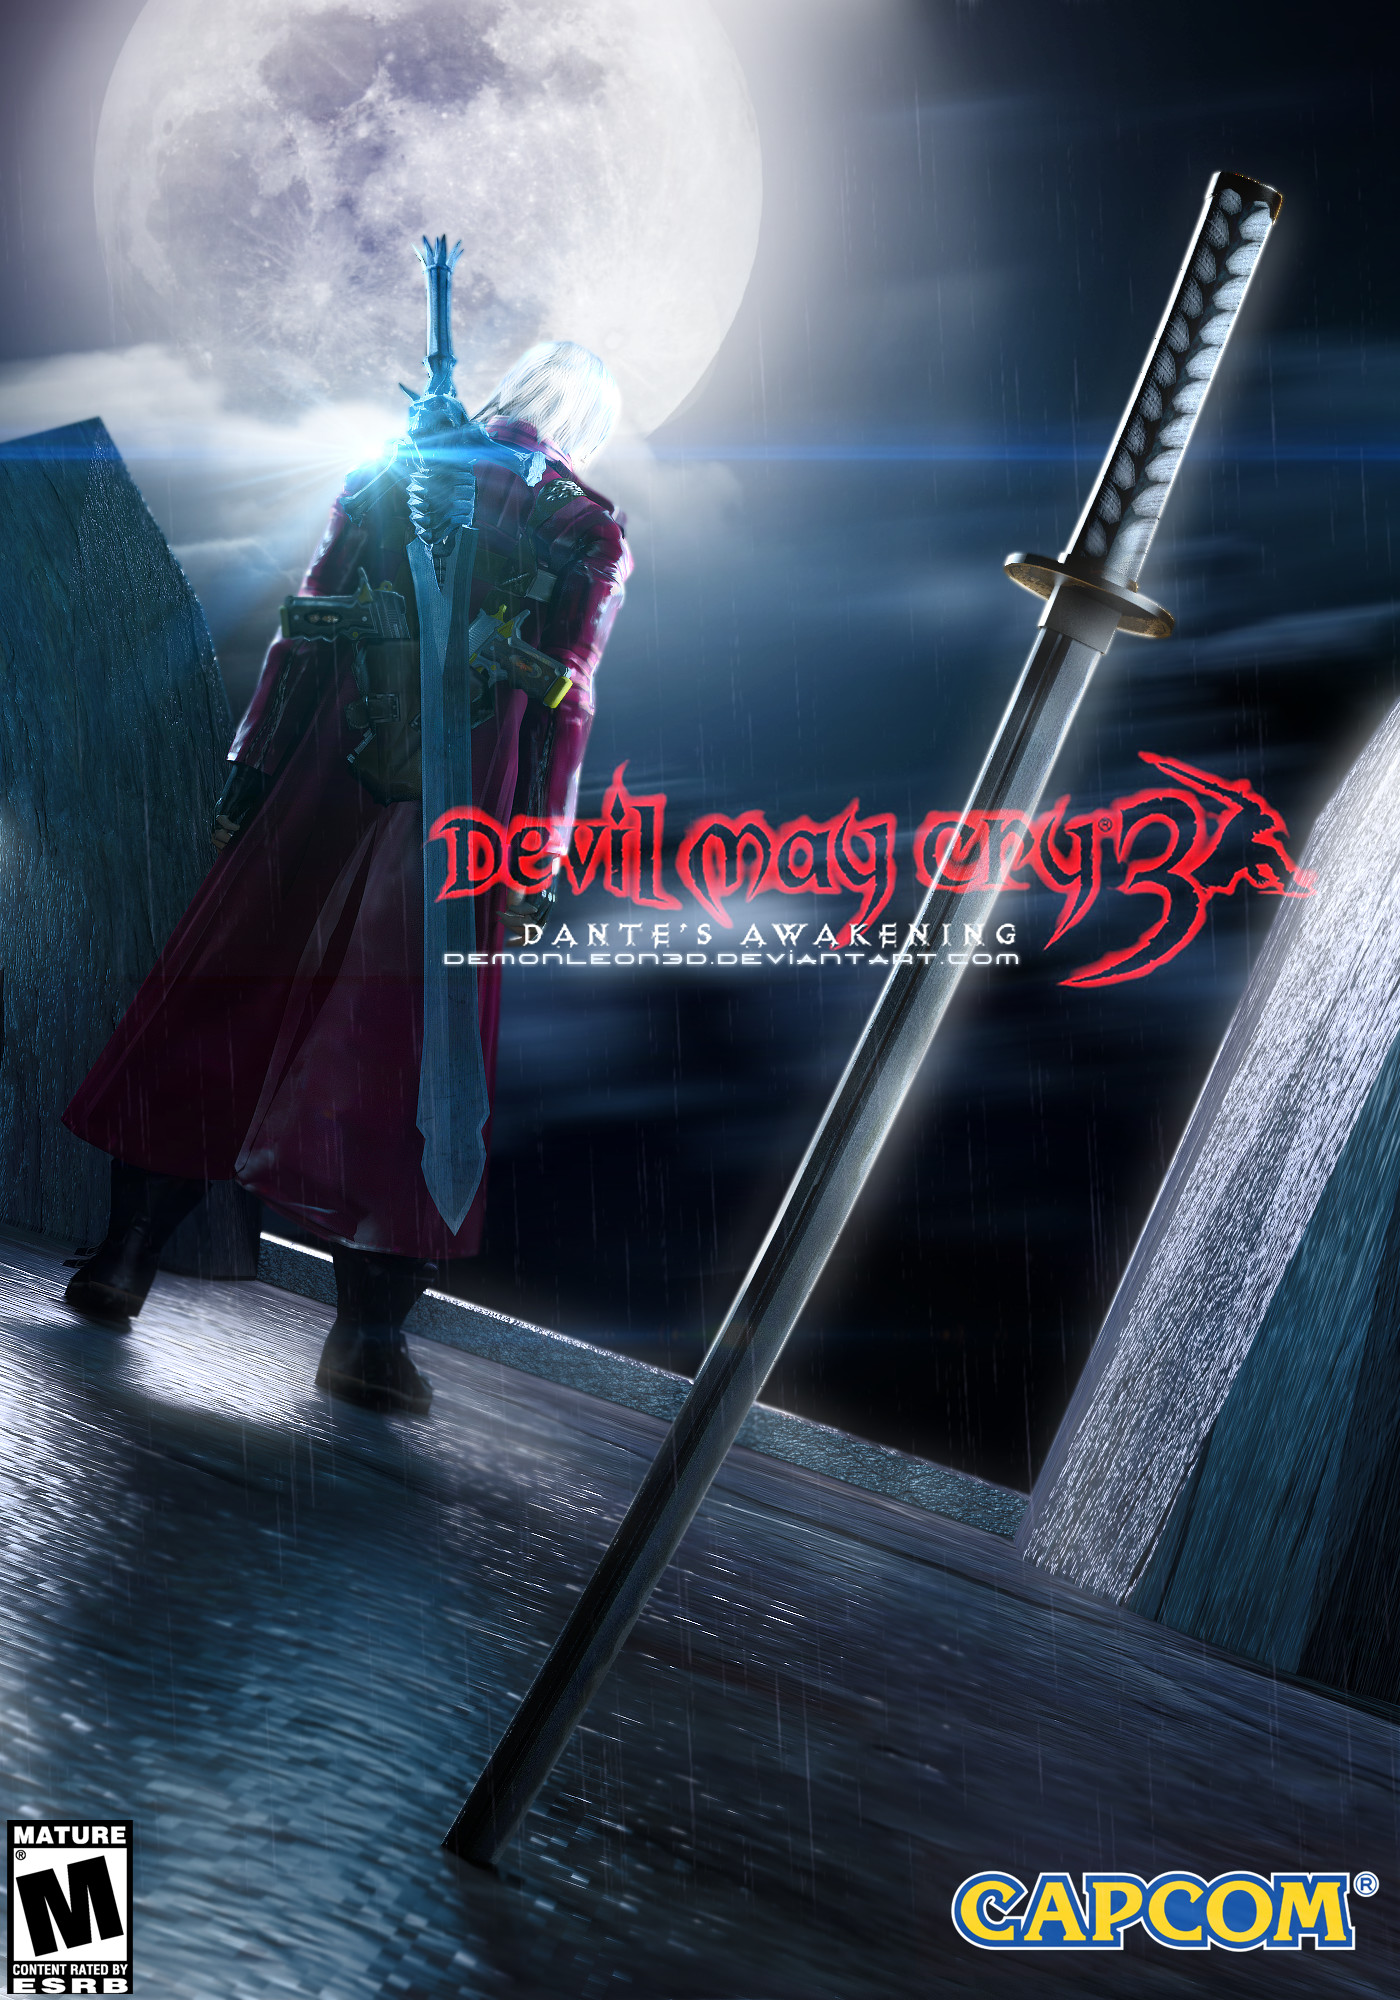 Nintendo download february 20, 2020 (europe) devil may cry 3.